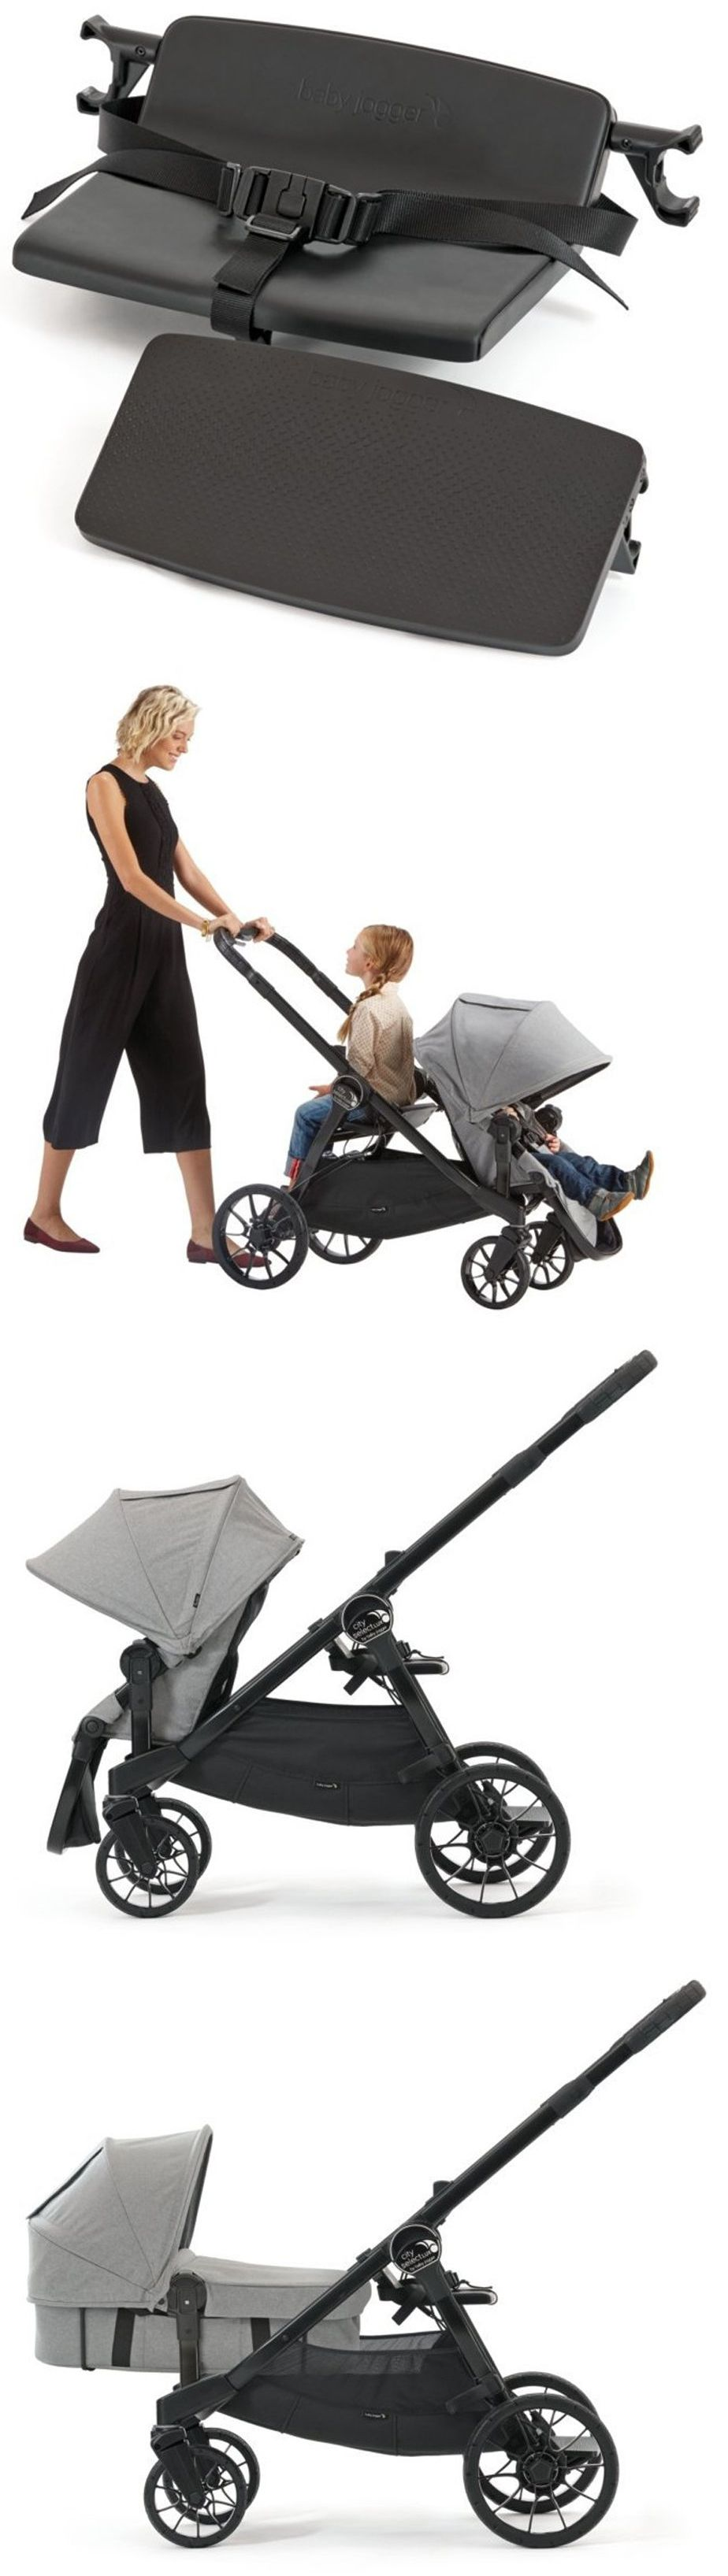 Bench Seat Attachment For Baby Jogger City Select Lux Stroller New